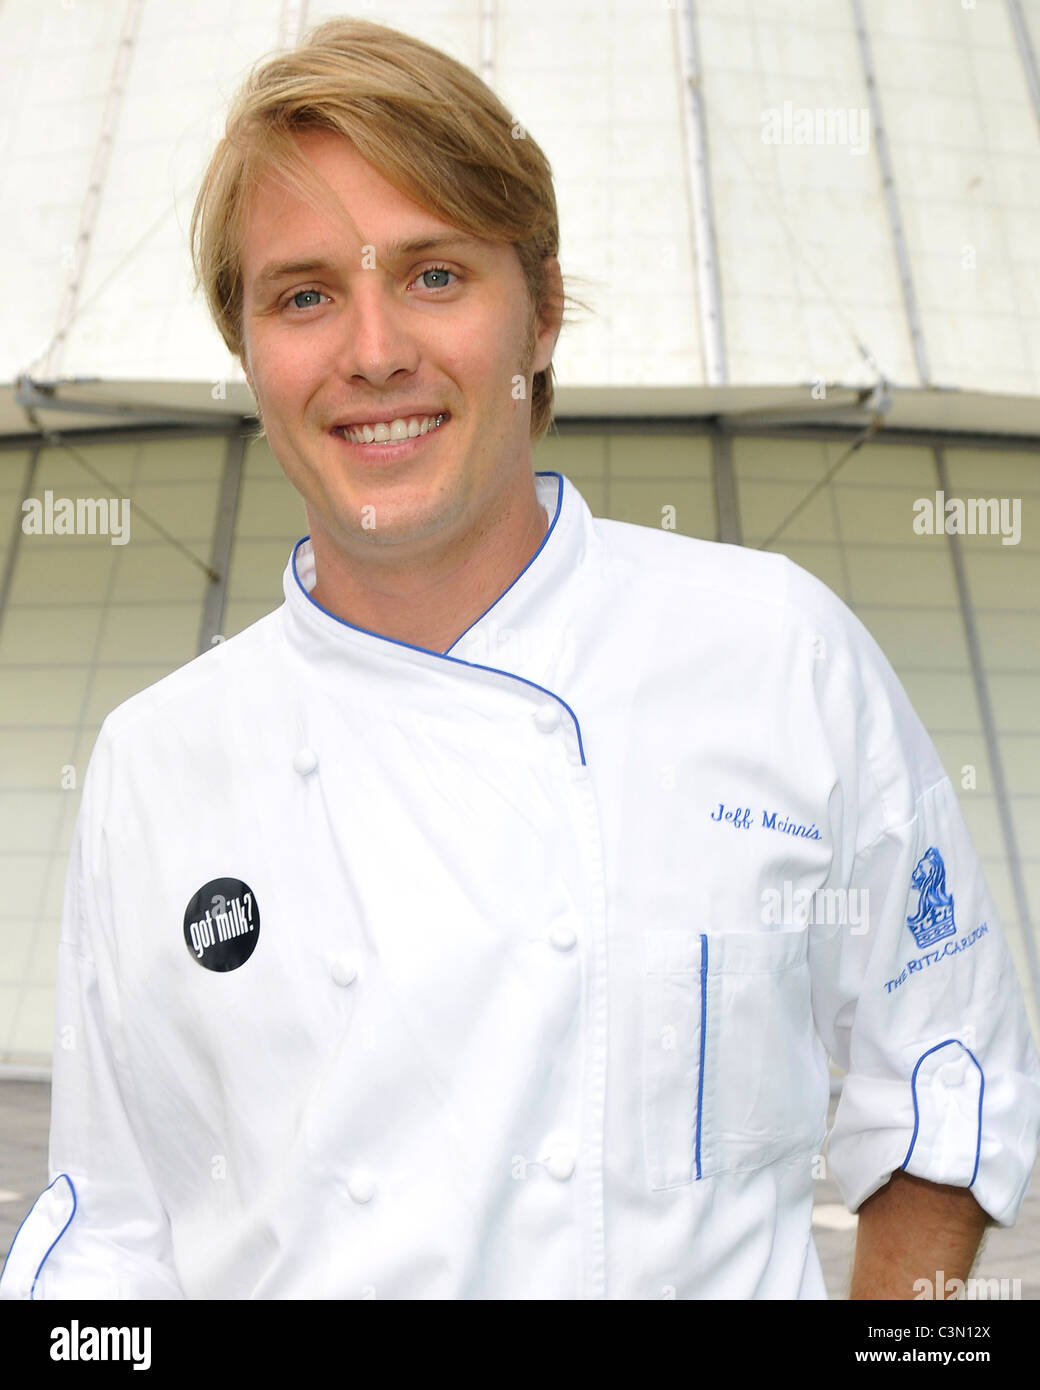 mcinnis stock photos mcinnis stock images alamy jeff mcinnis from the television series top chef season 5 participates in dairy day